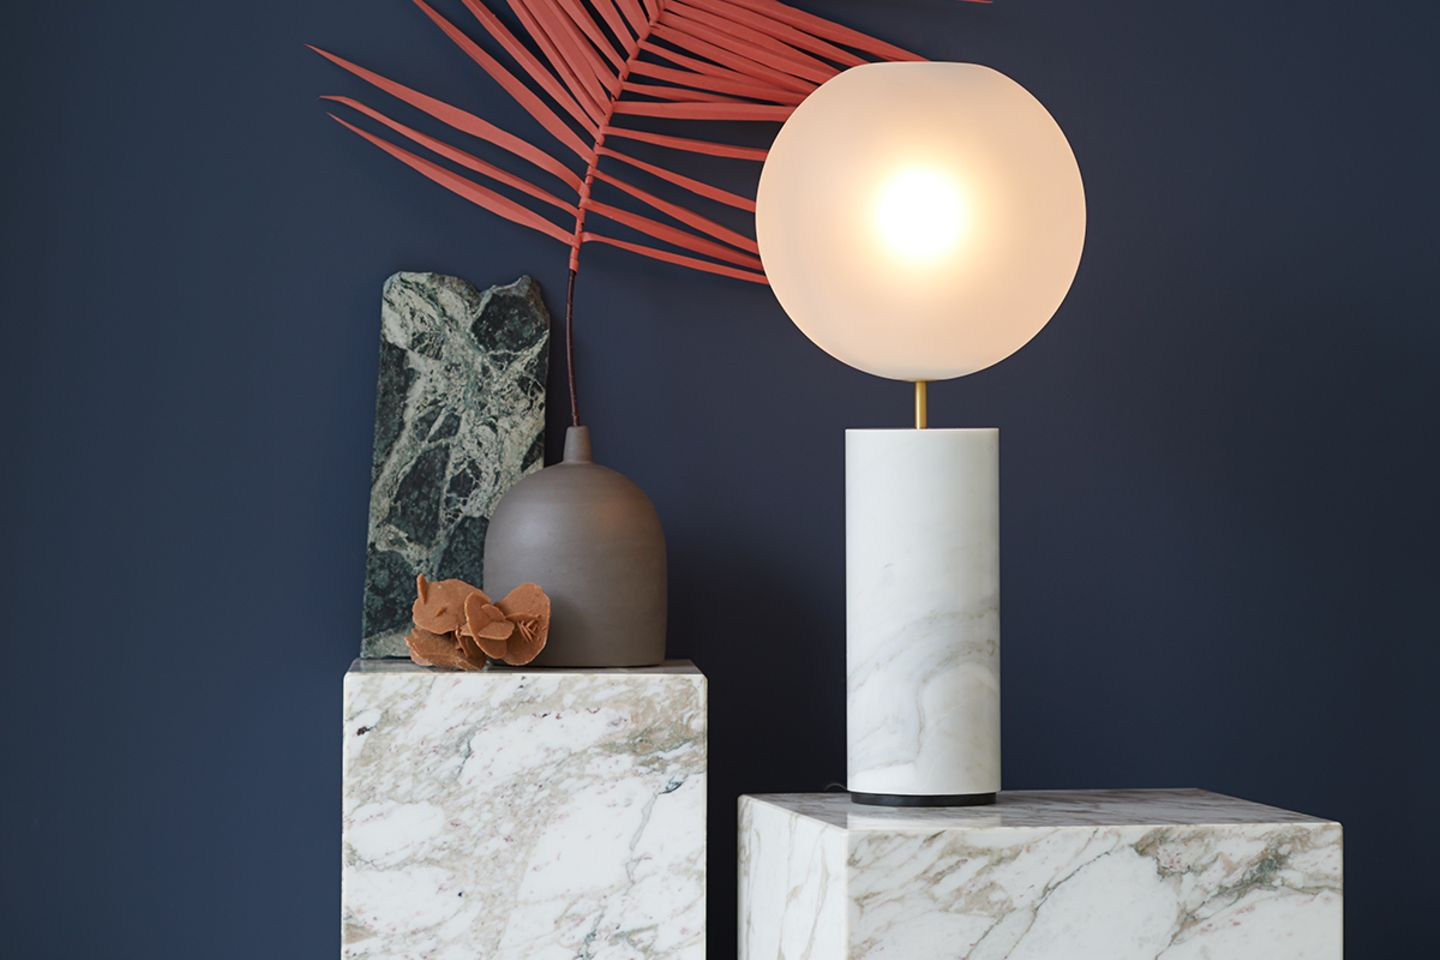 """Dossier Steinzart: Tischleuchte """"Soffio Frostes Table Lamp"""", Giopato & Coombes"""